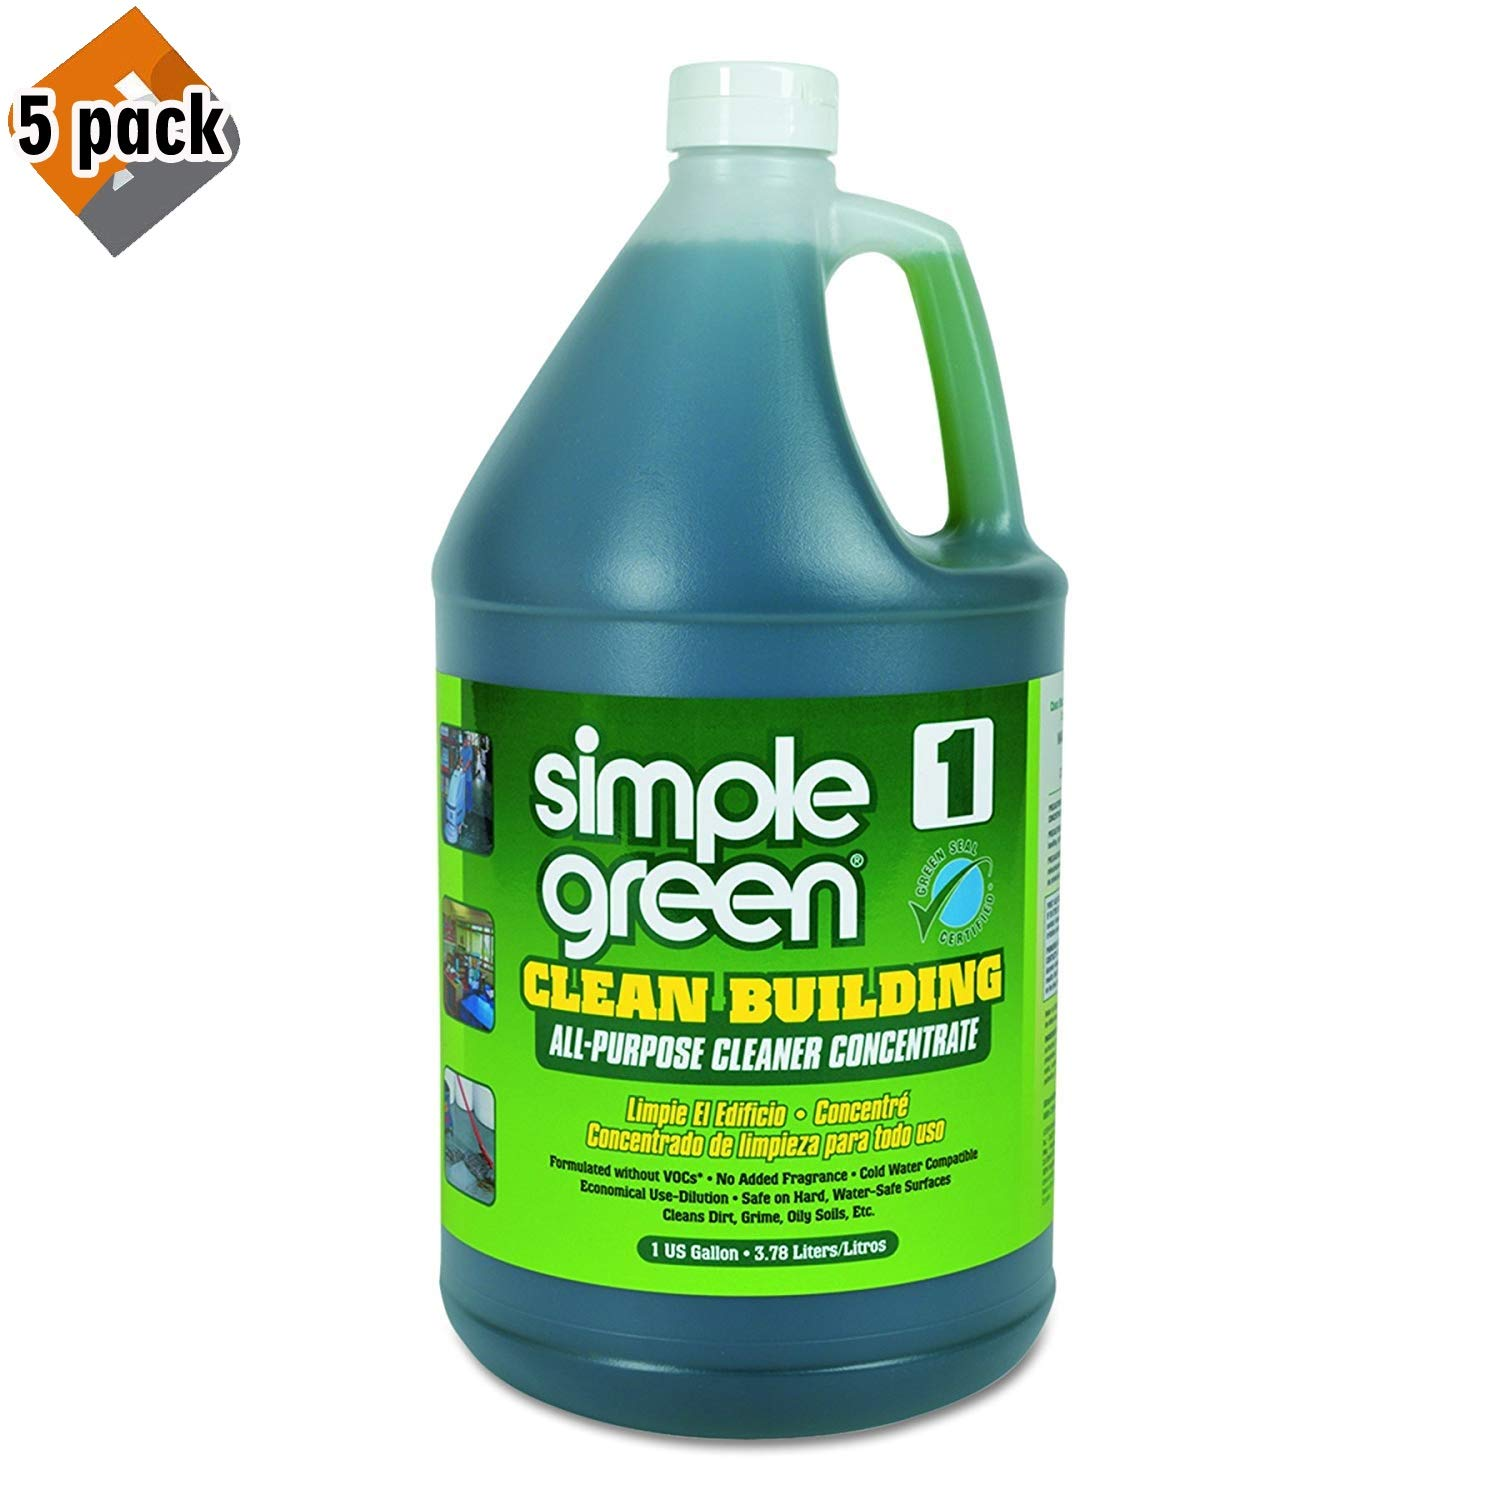 Simple Green Industrial SMP11001 Clean Building All-Purpose Cleaner Concentrate, 1gal Bottle - 5 Pack by Simple Green Industrial (Image #1)